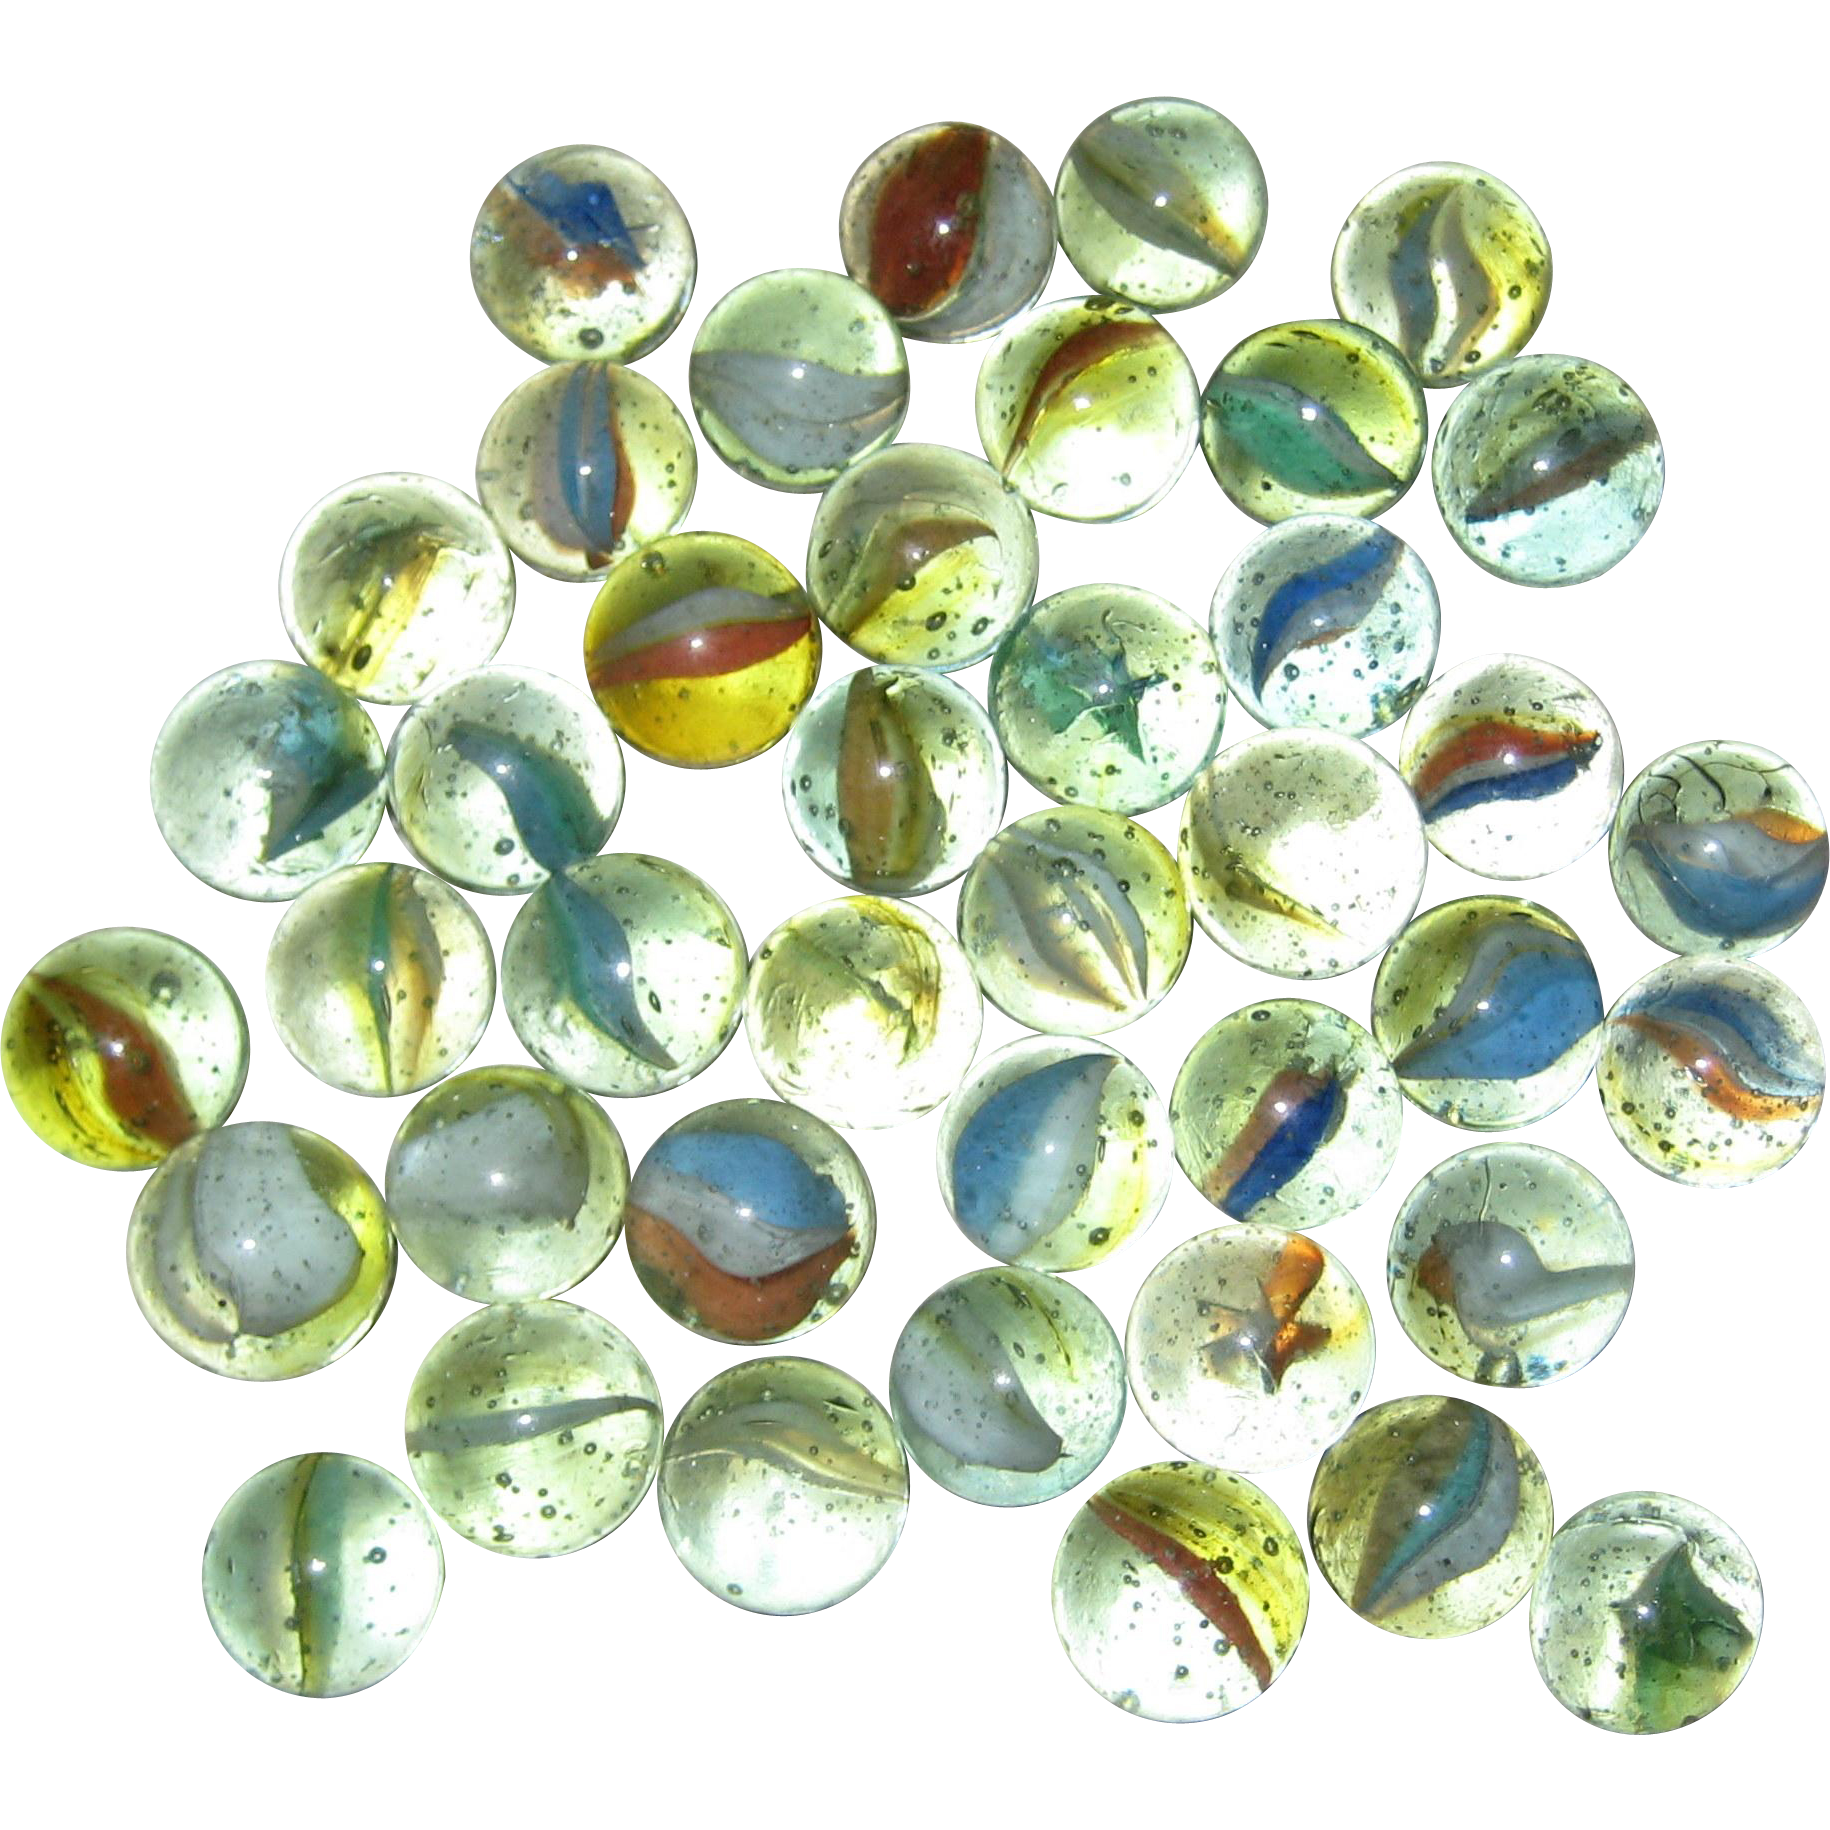 Glass marble png. Lot of peltier banana